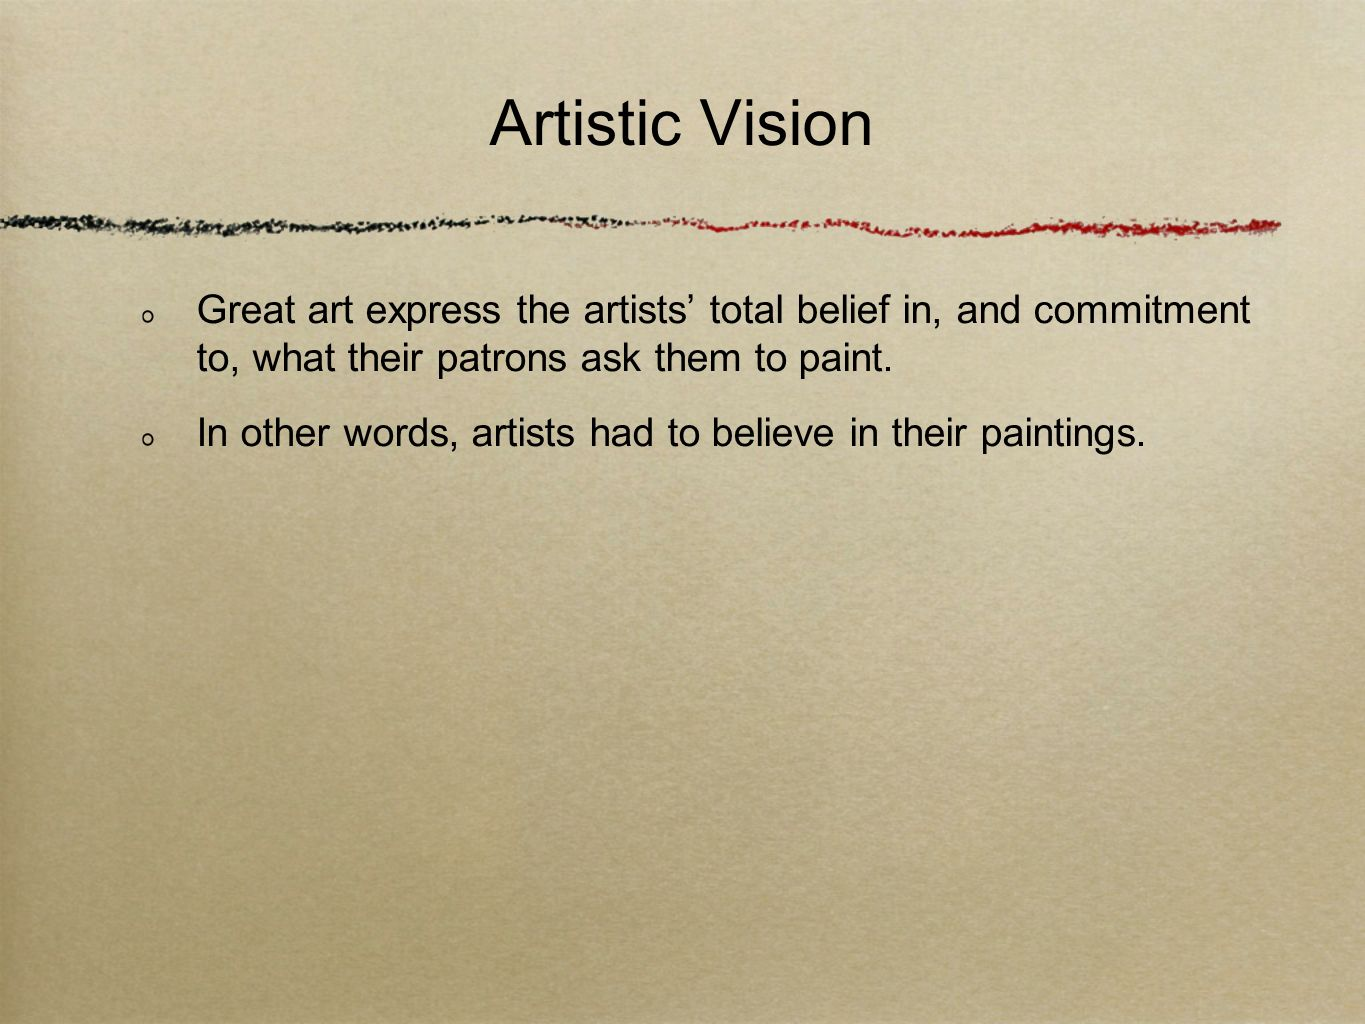 Artistic Vision Great art express the artists total belief in, and commitment to, what their patrons ask them to paint.